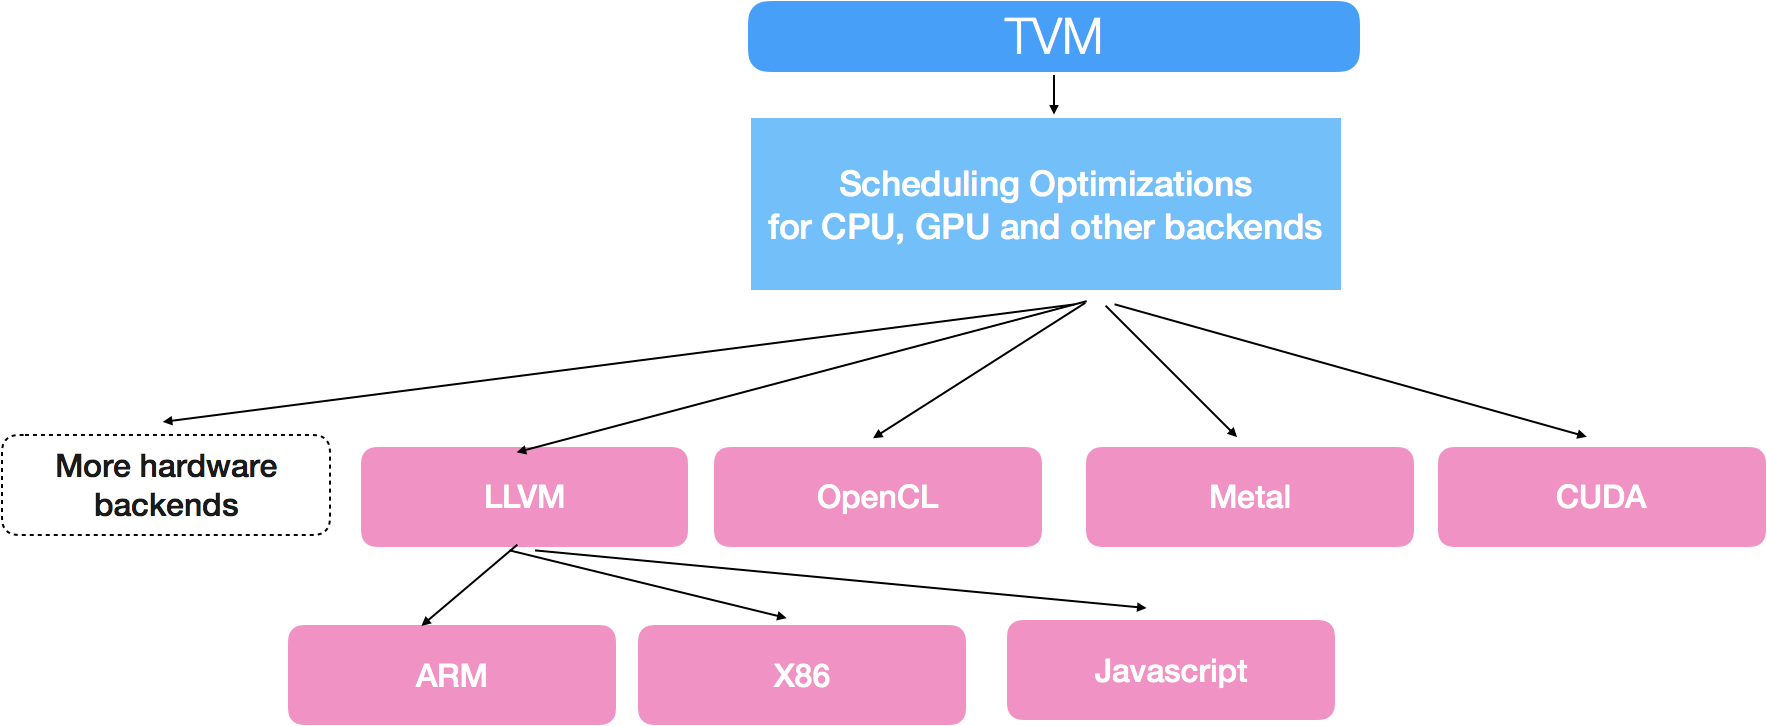 TVM: An End to End IR Stack for Deploying Deep Learning